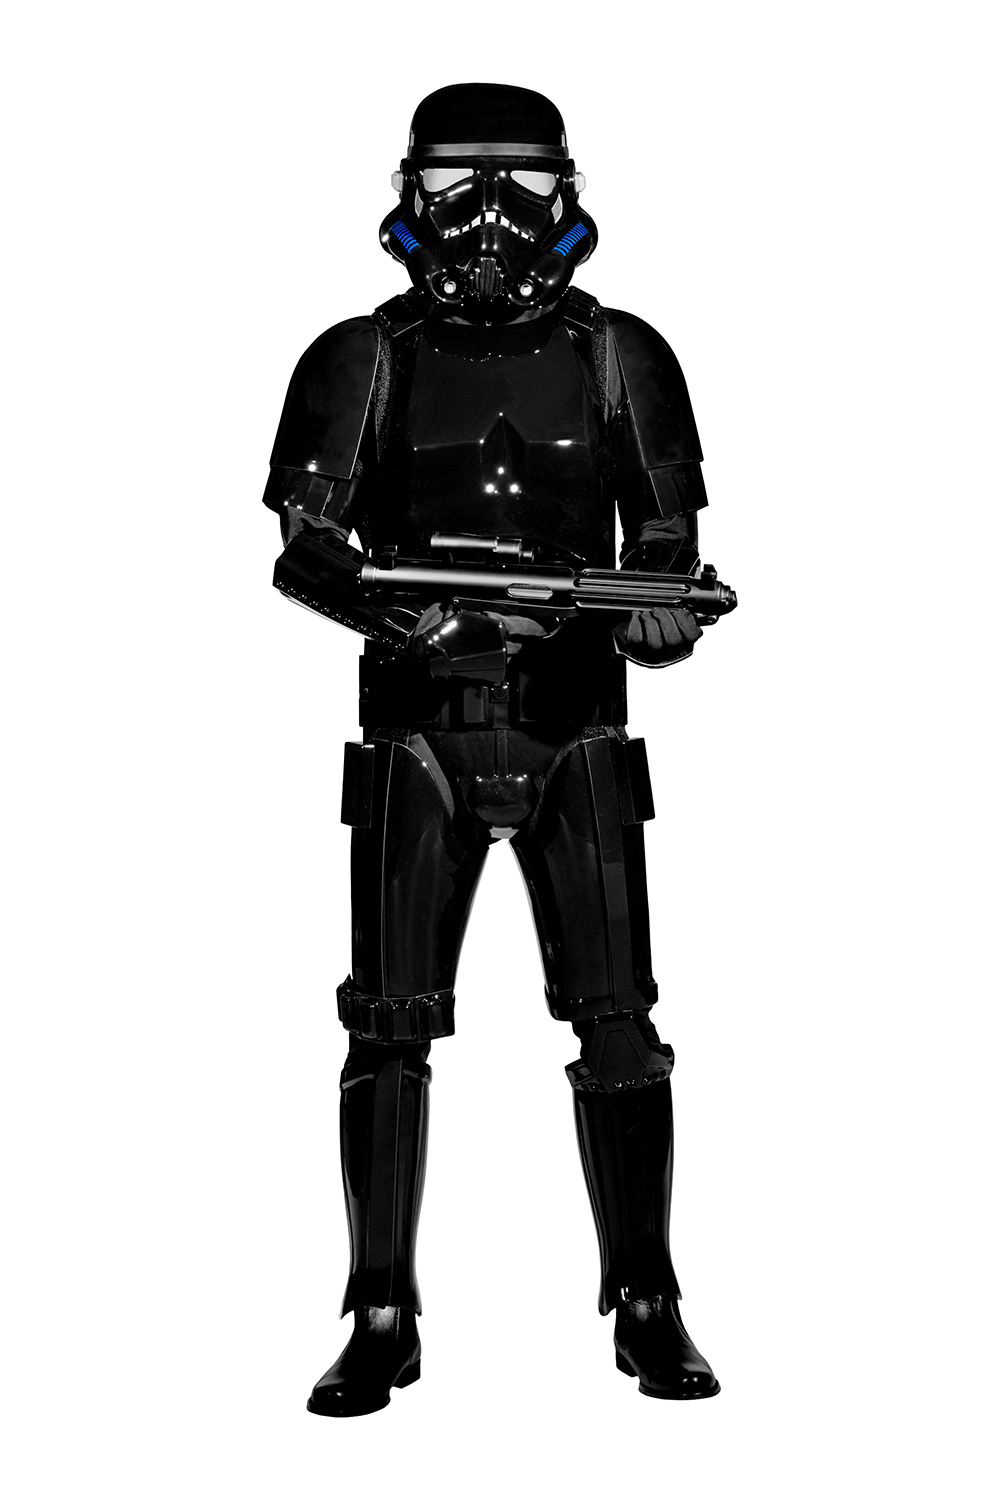 Shadowtrooper Costume Armour Packages available at .Stormtrooper-Costumes.com - The Stormtrooper  sc 1 th 275 & Stormtrooper-costumes.com - Stormtrooper Costumes Stormtrooper ...